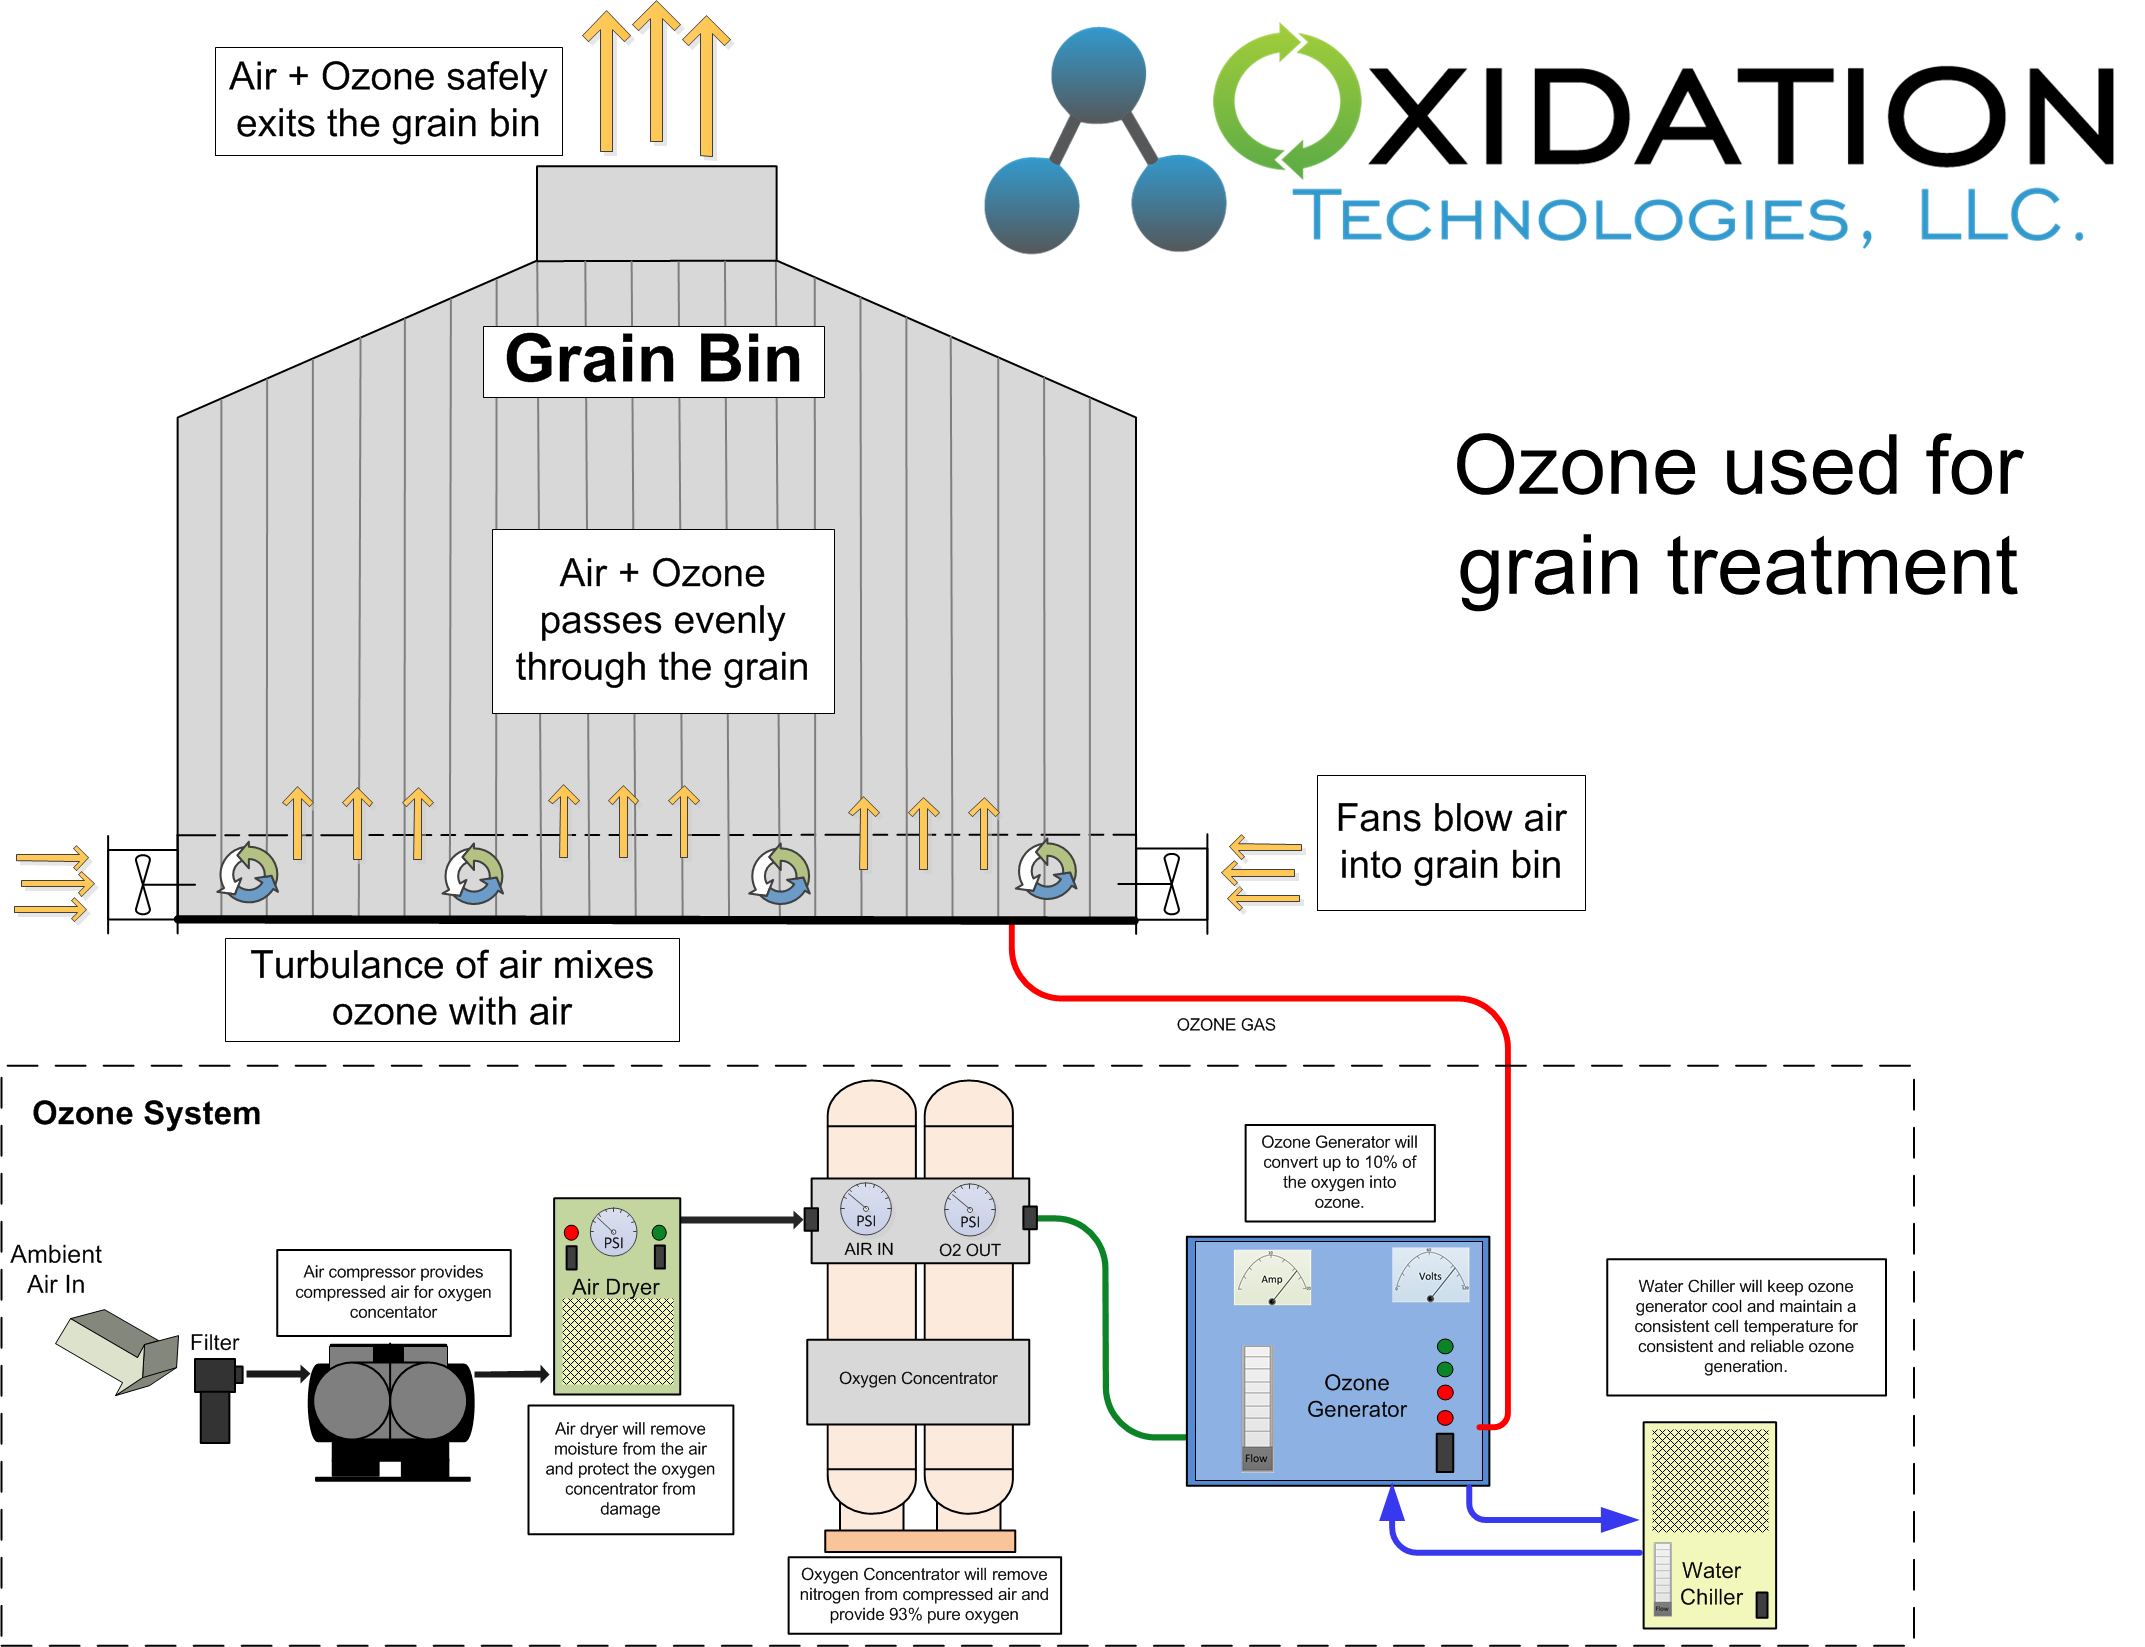 Ozone as an insictacide for grain